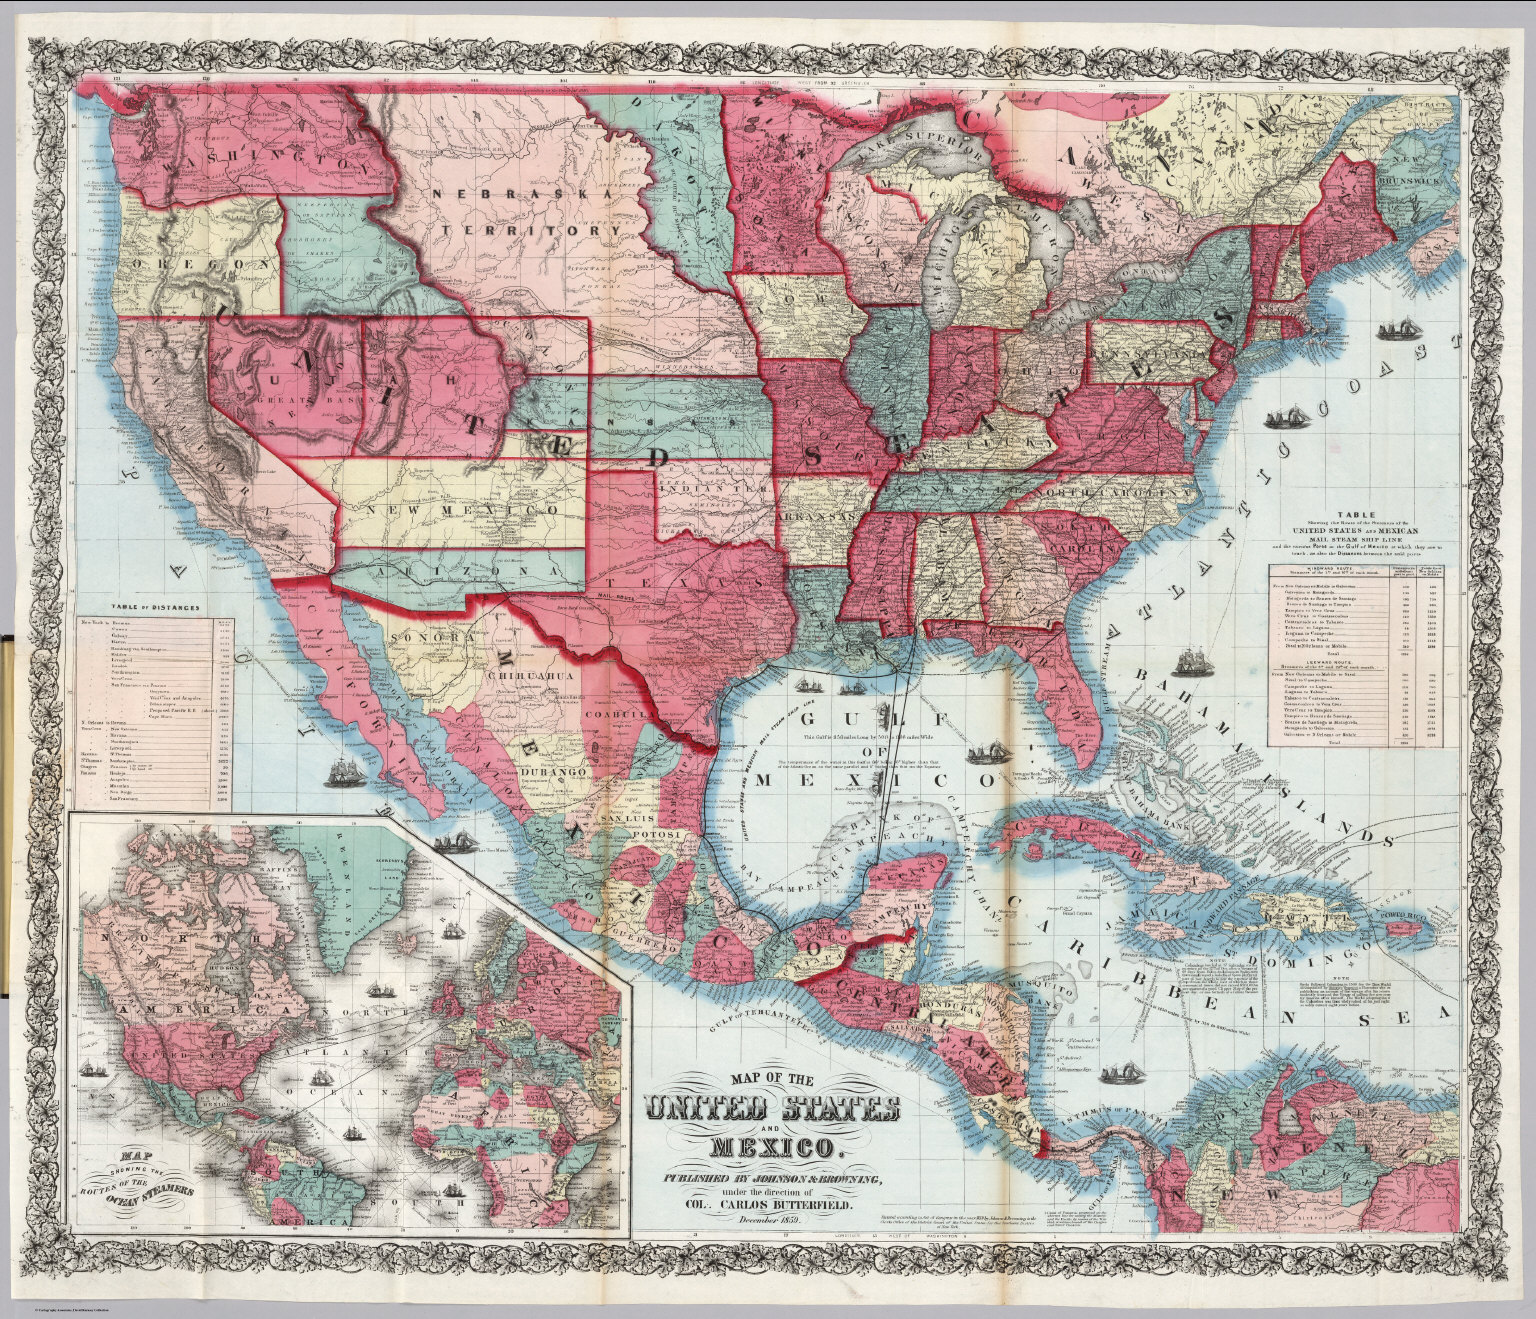 map of the united states and mexico